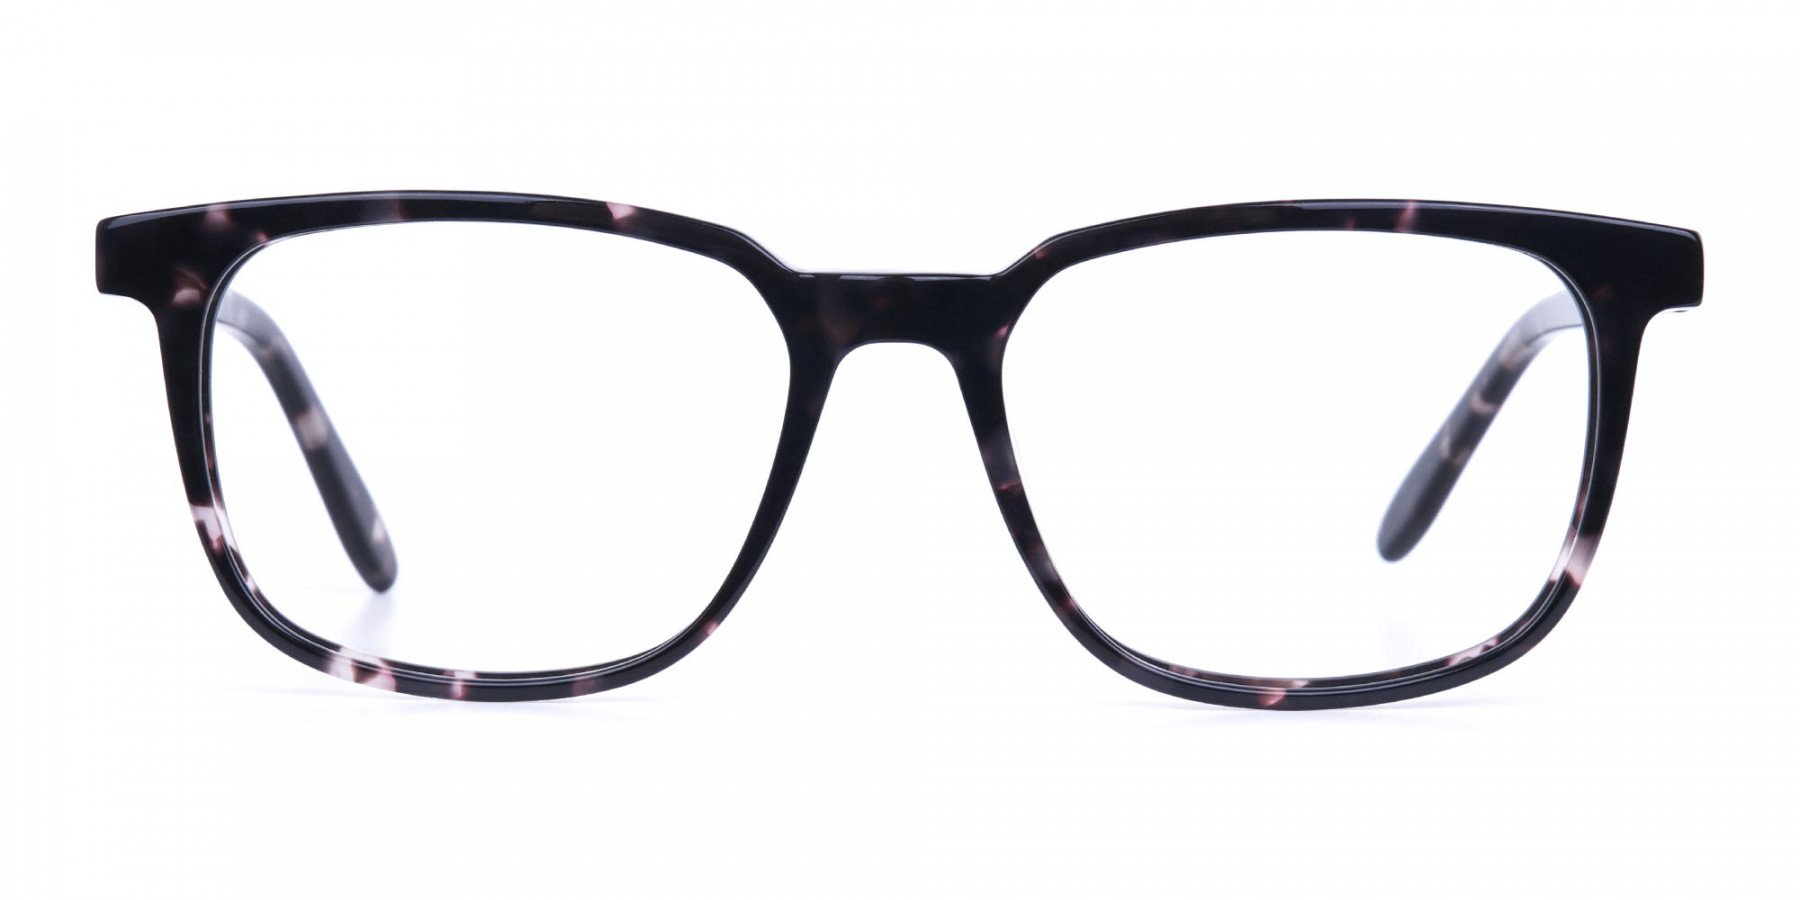 Dark Tortoise Rectangular Glasses Acetate Unisex-1